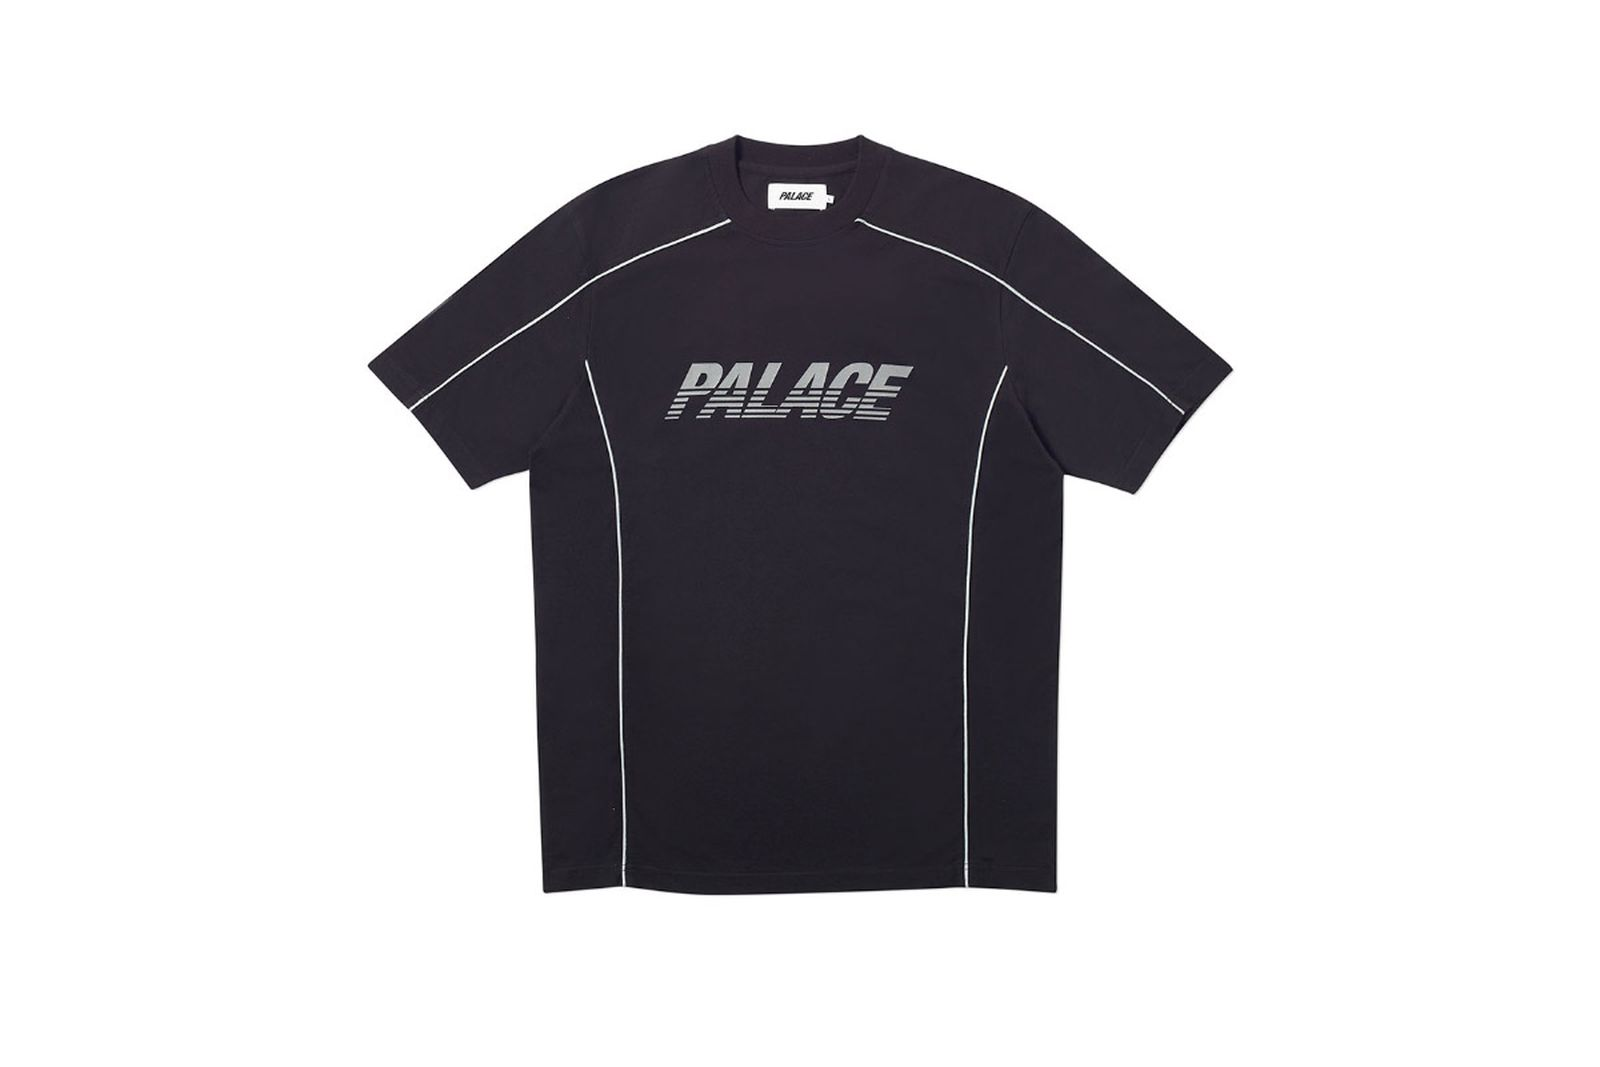 Palace 2019 Autumn T Shirt Pimped black front fw19